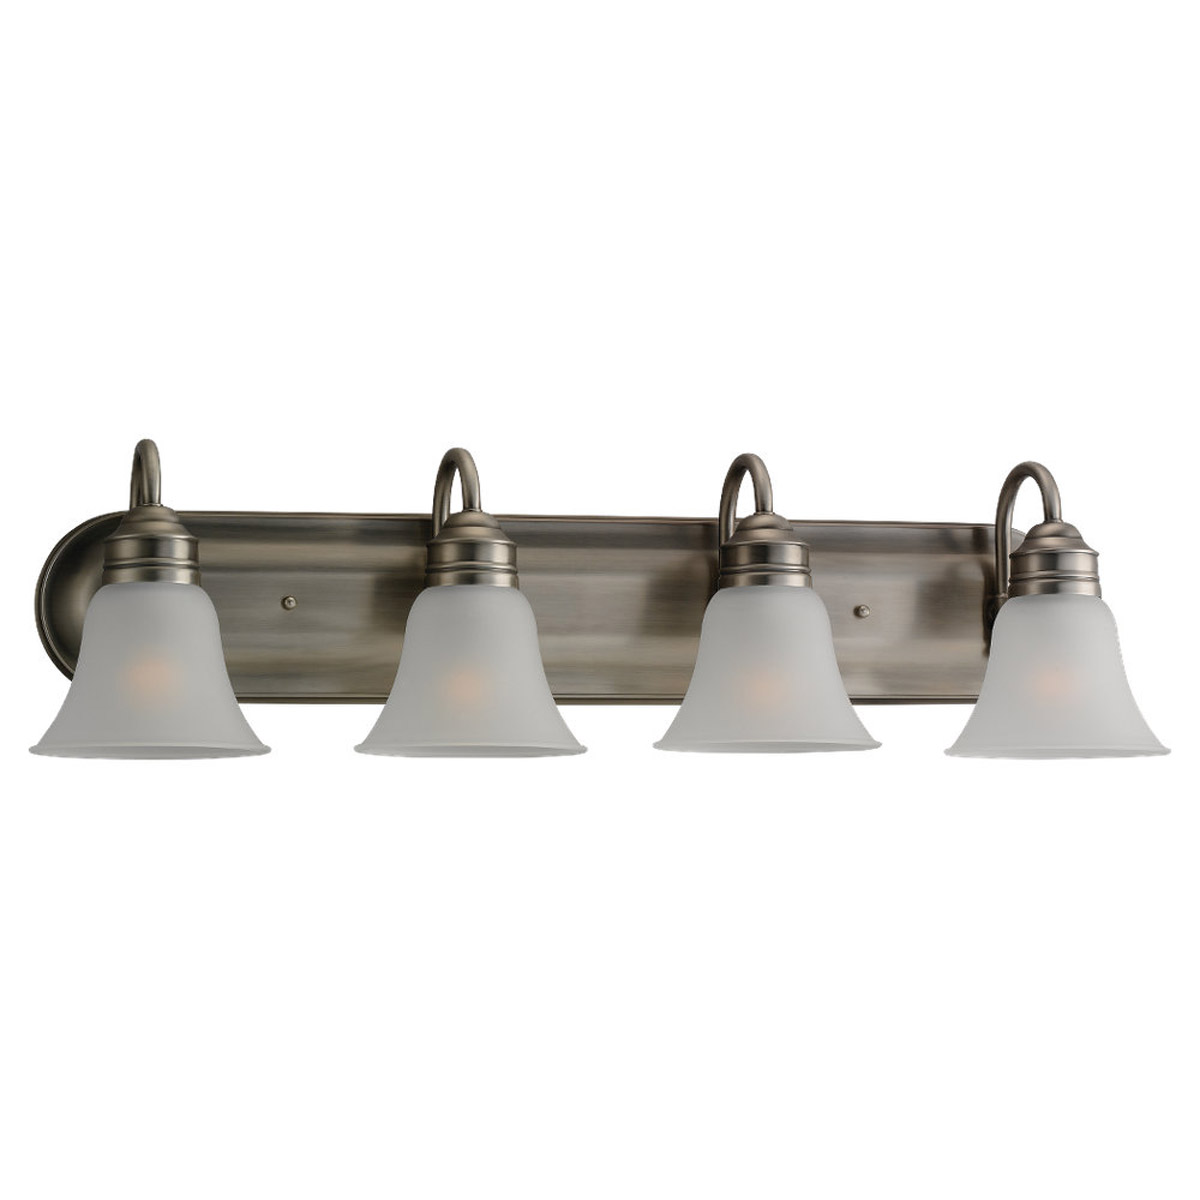 Sea Gull 49853BLE-965 Gladstone 4 Light 33 inch Antique Brushed Nickel Bath Vanity Wall Light in Satin Etched Glass photo